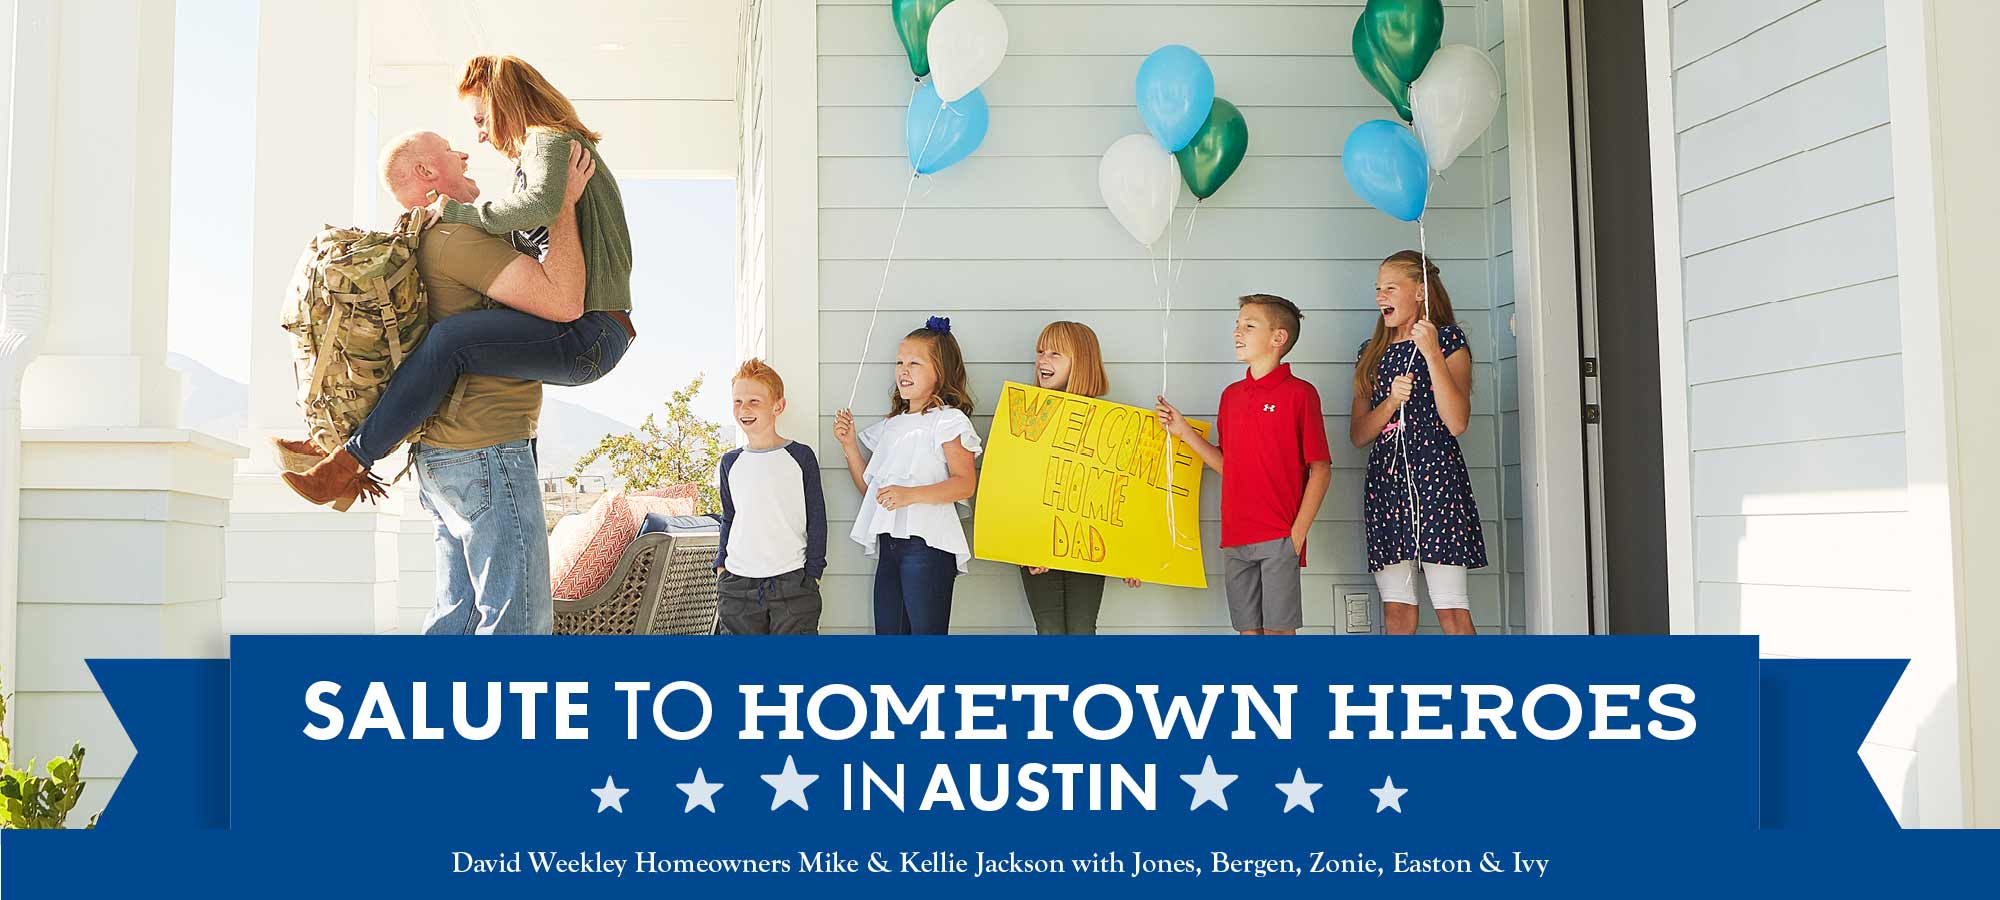 Salute to Hometown Heroes in Austin!